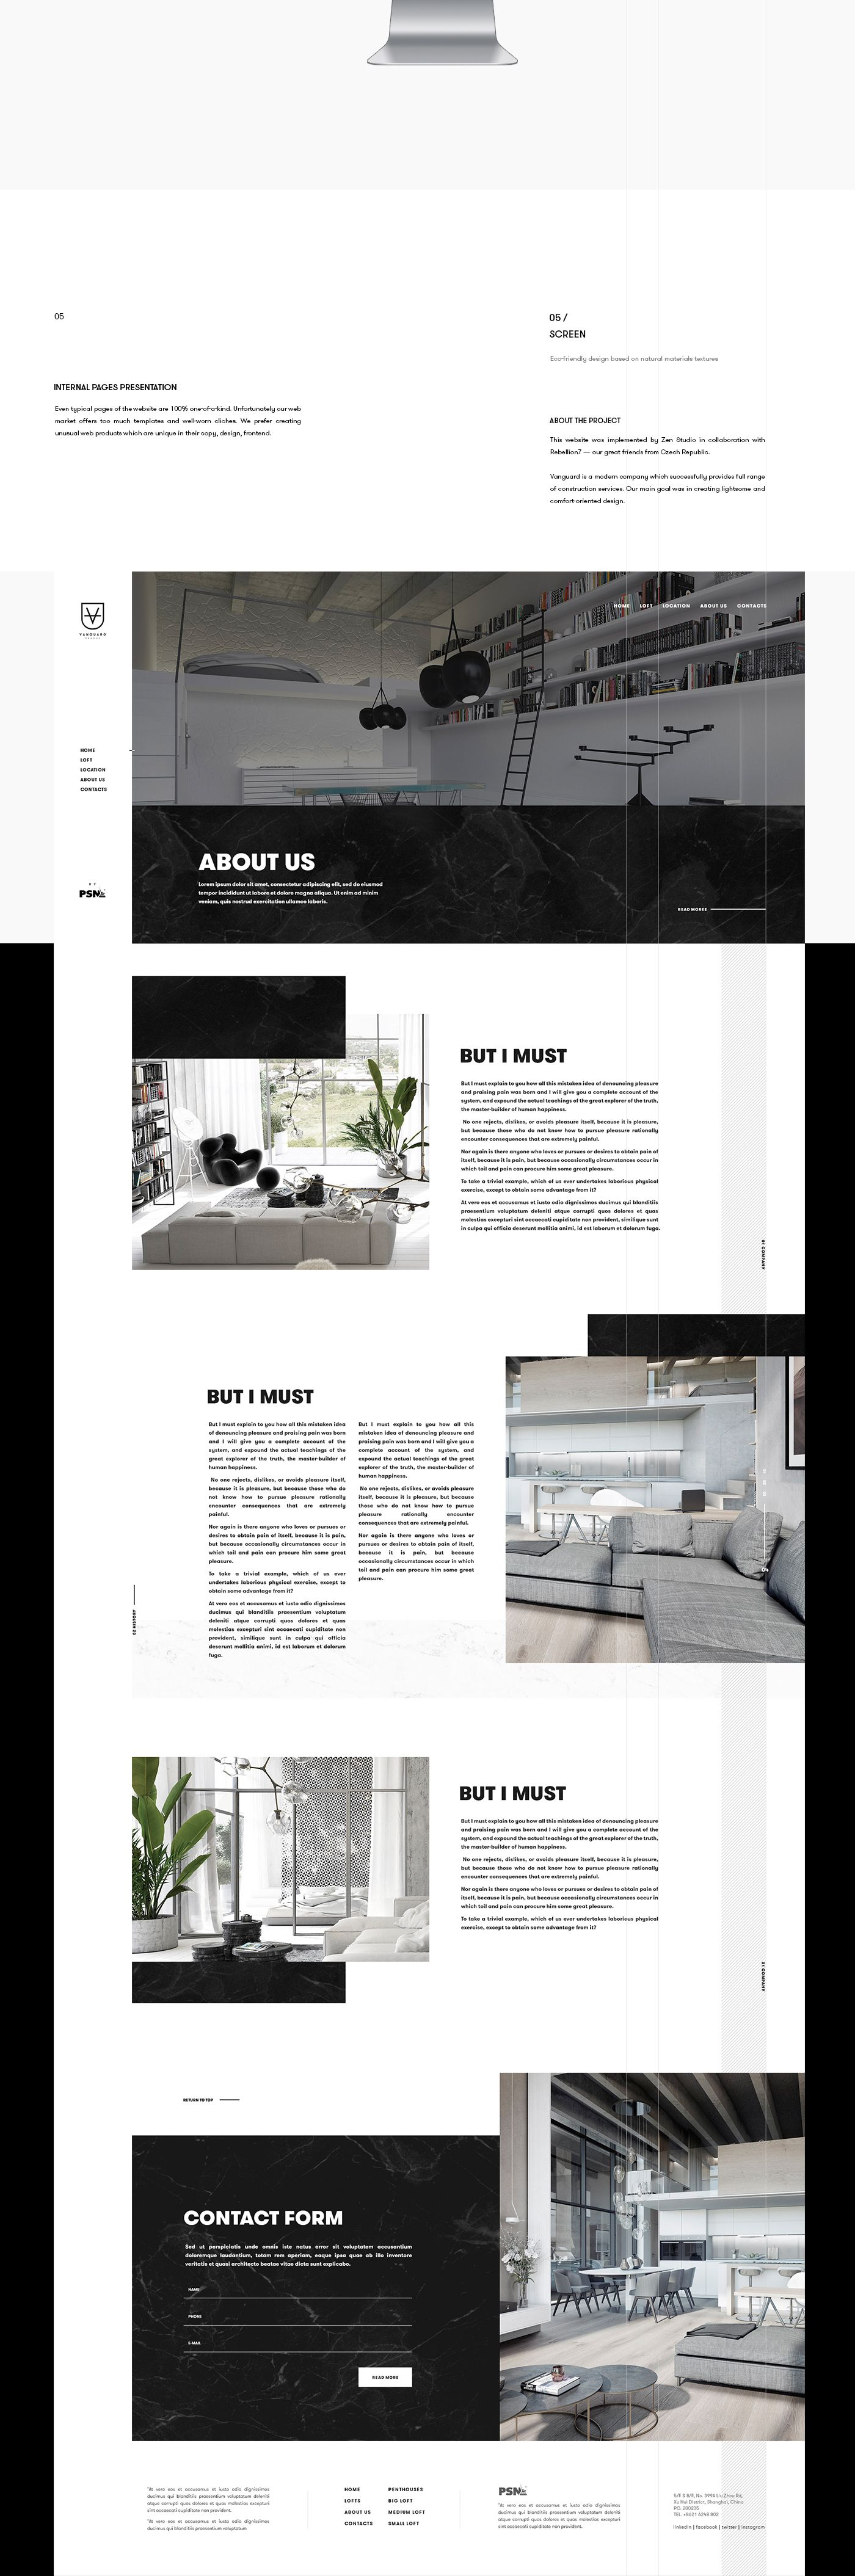 Vanguard Stylish Web Project For The Development And Construction Company Website Is Provided By Zen Studio In Col Experience Design Page Design Web Project